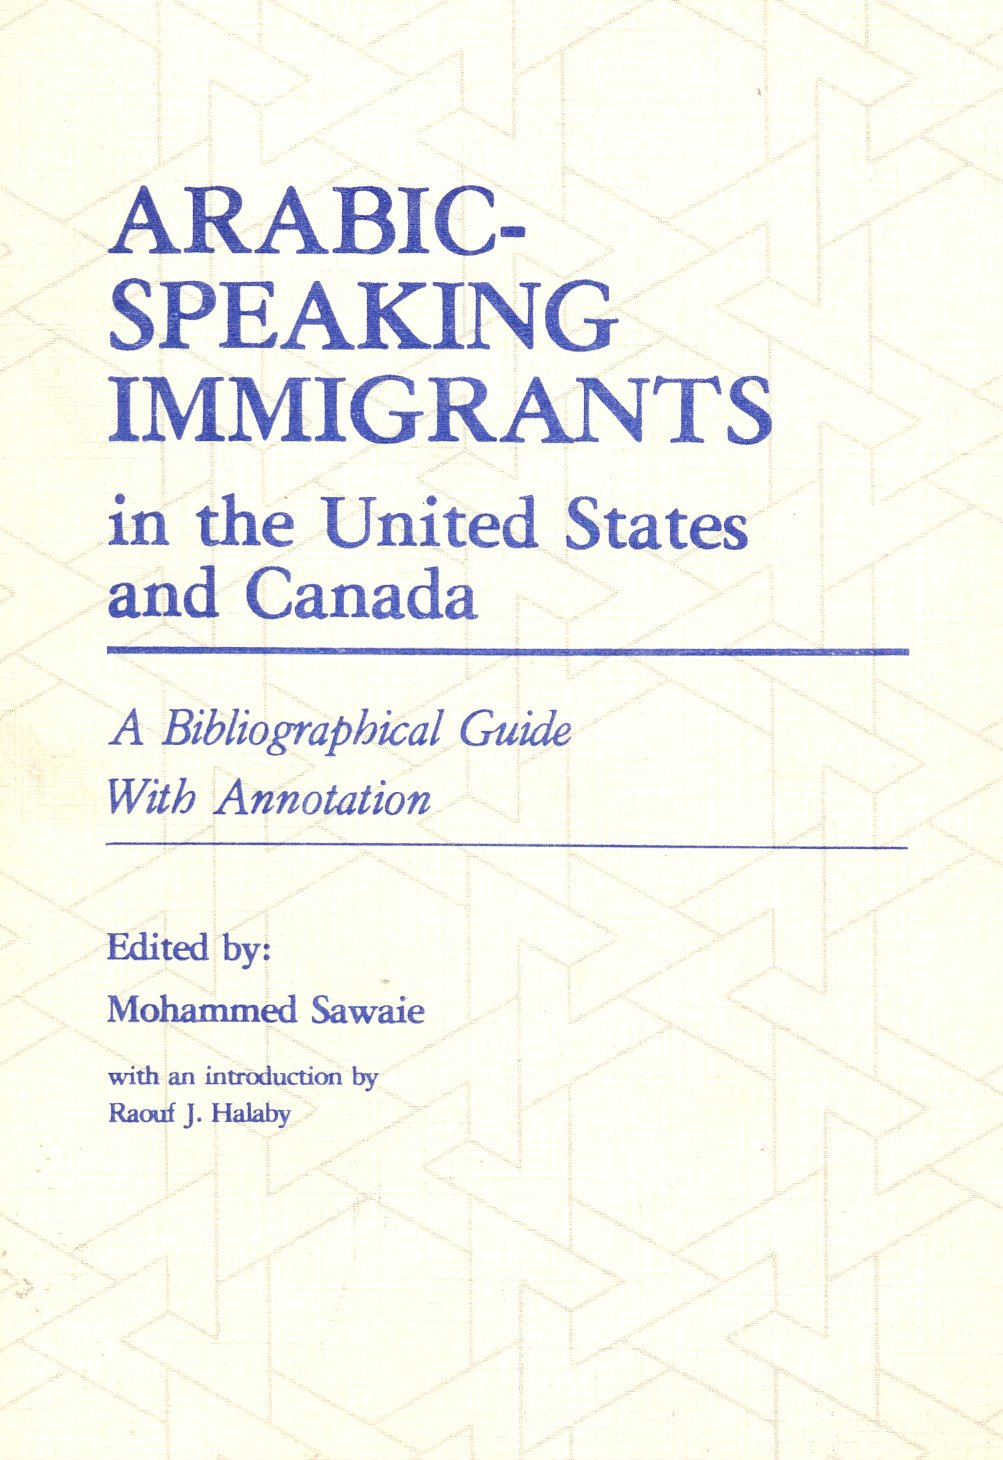 Arabic-Speaking Immigrants in the United States and Canada